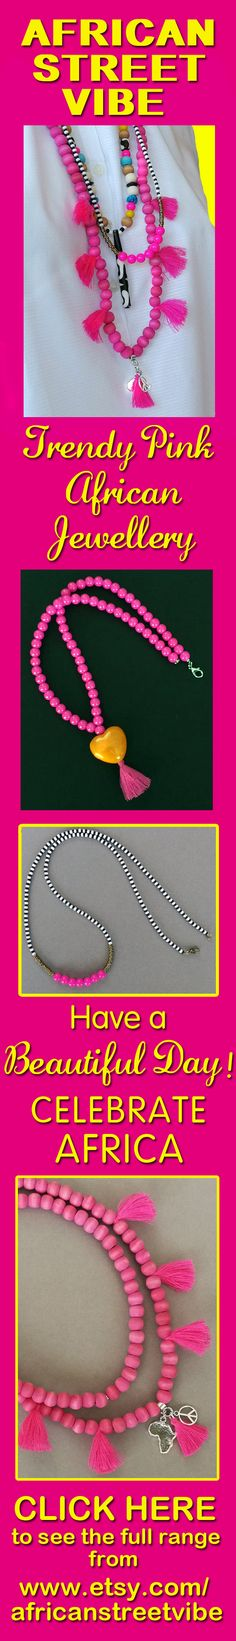 LOOK AT www.etsy.com/africanstreetvibe to see the full range of African street style necklaces, bracelets and bangles reflecting the joyous spirit of the South African Youth Choir at AGT.  #pink #necklace #jewellery #gift #jewelry #fashion_accessories #African #africanstreetvibe #boho #ethnic #charm_necklace